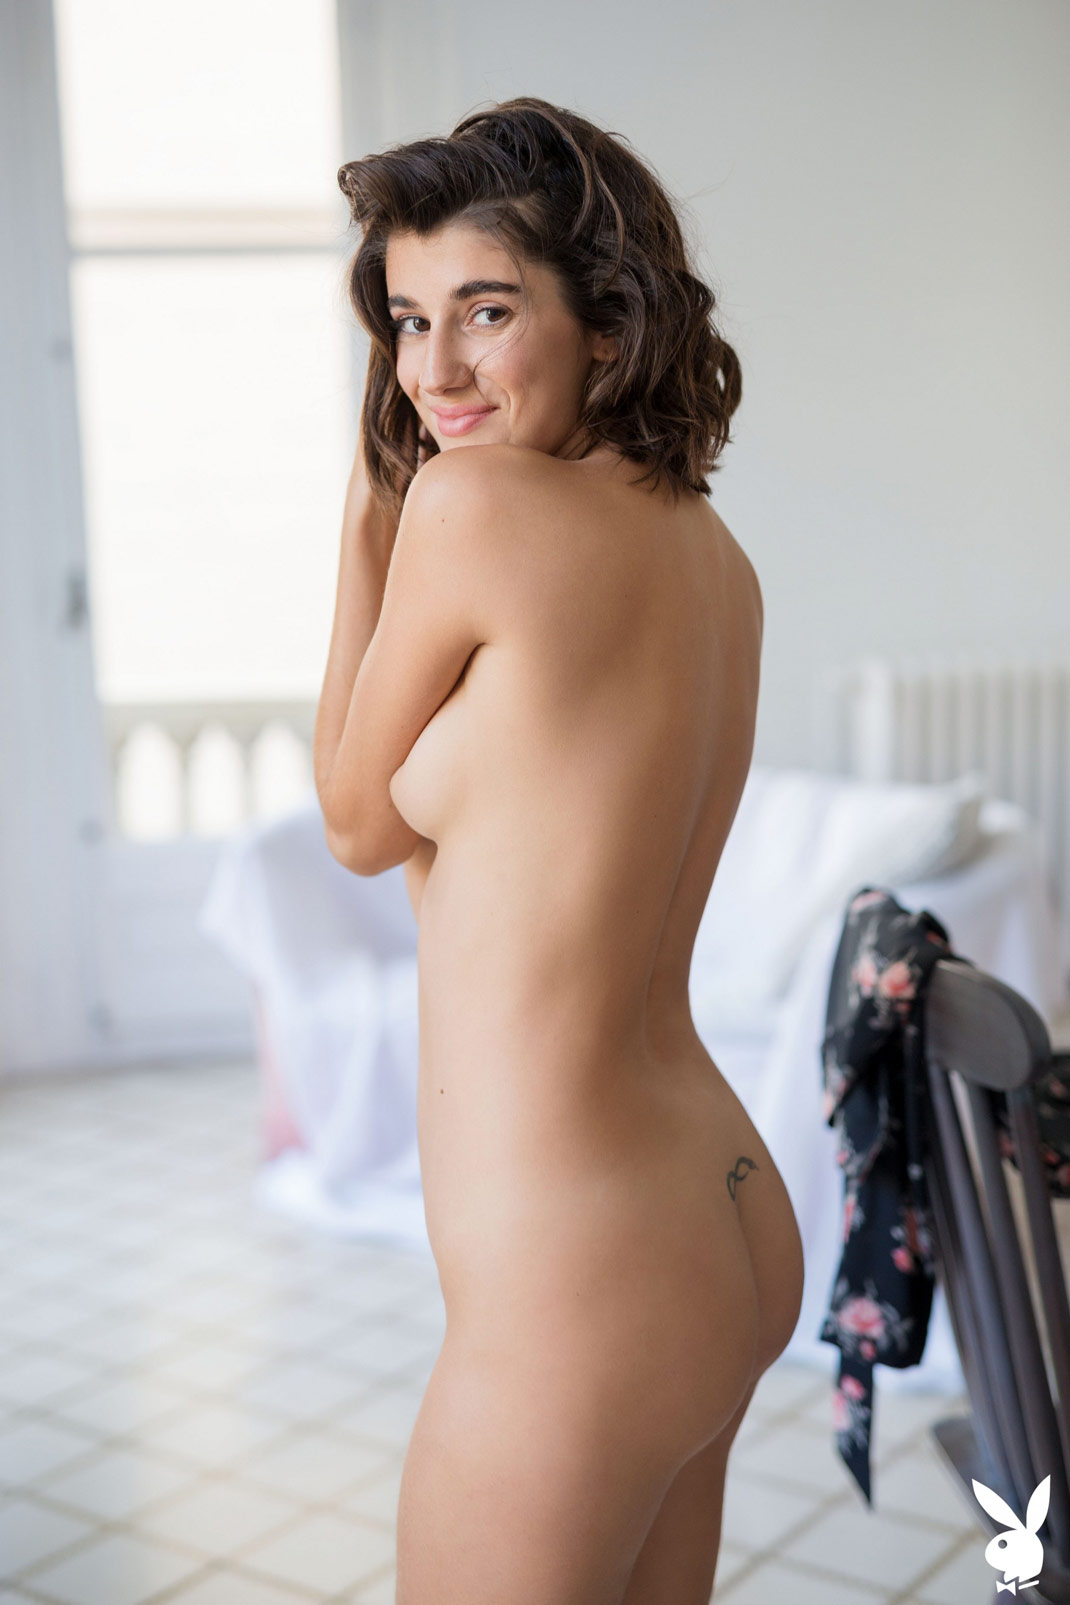 Ana Maria Porn ana maria poses nude for playboy. rating = unrated